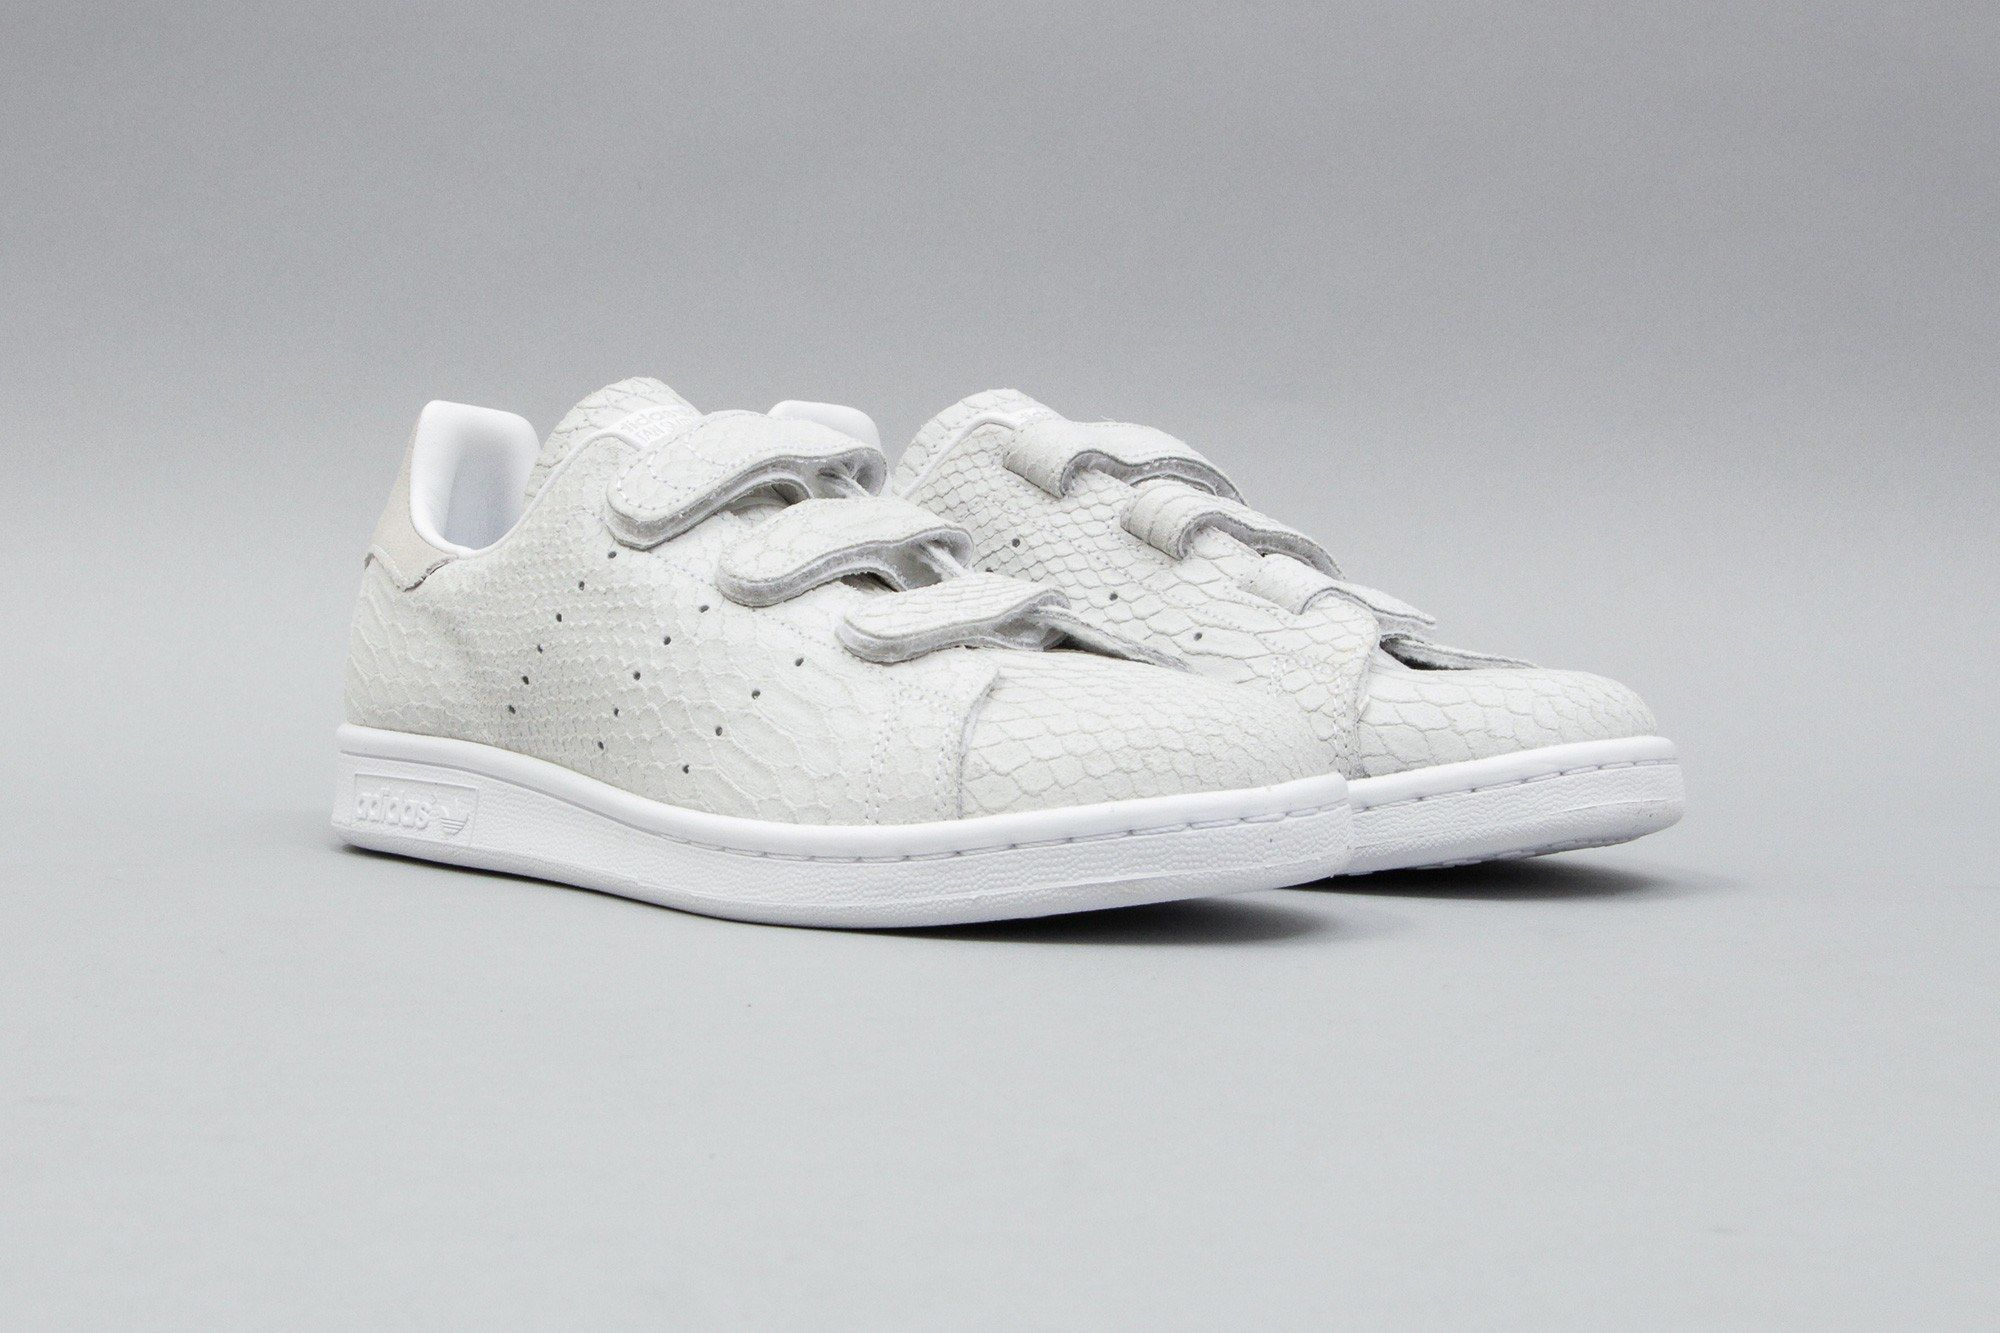 Adidas Wmns Stan Smith Cf Running White S32010 Cremeweiss From B V D S T Cremeweiss